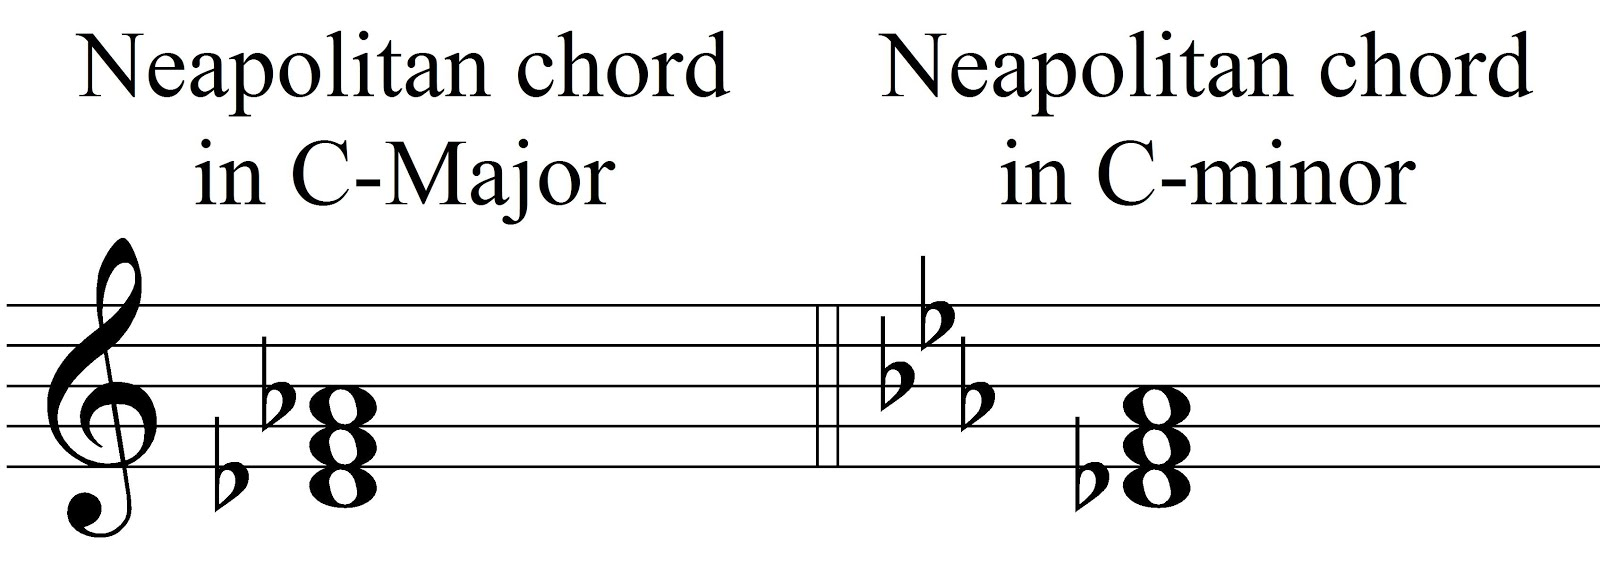 Music theory neapolitan chords neapolitan chords in root position buycottarizona Image collections